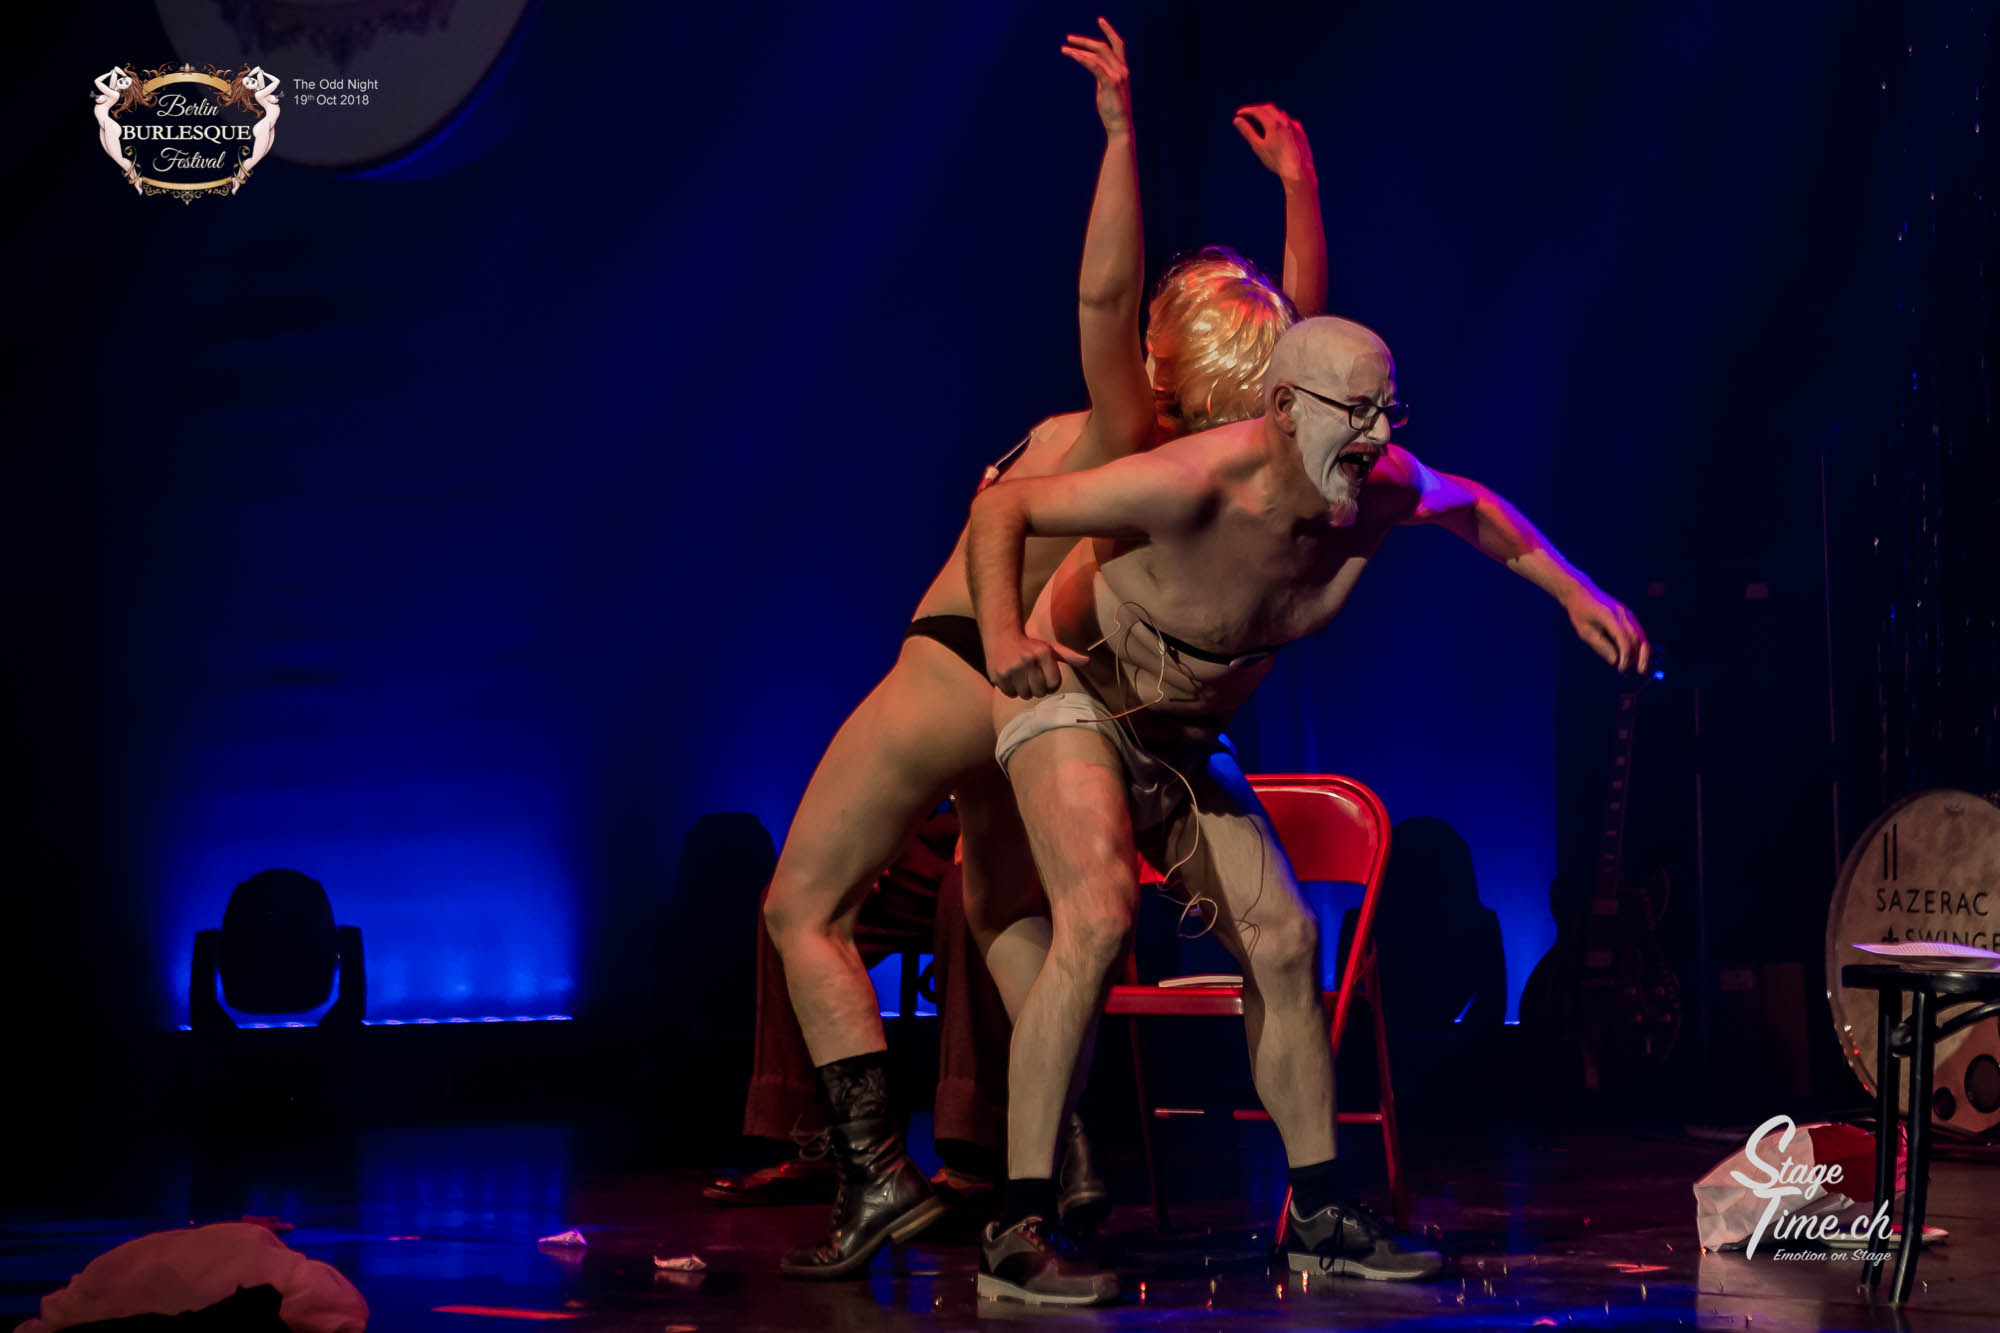 Berlin_Burlesque_Festival___The_Odd_Nigh